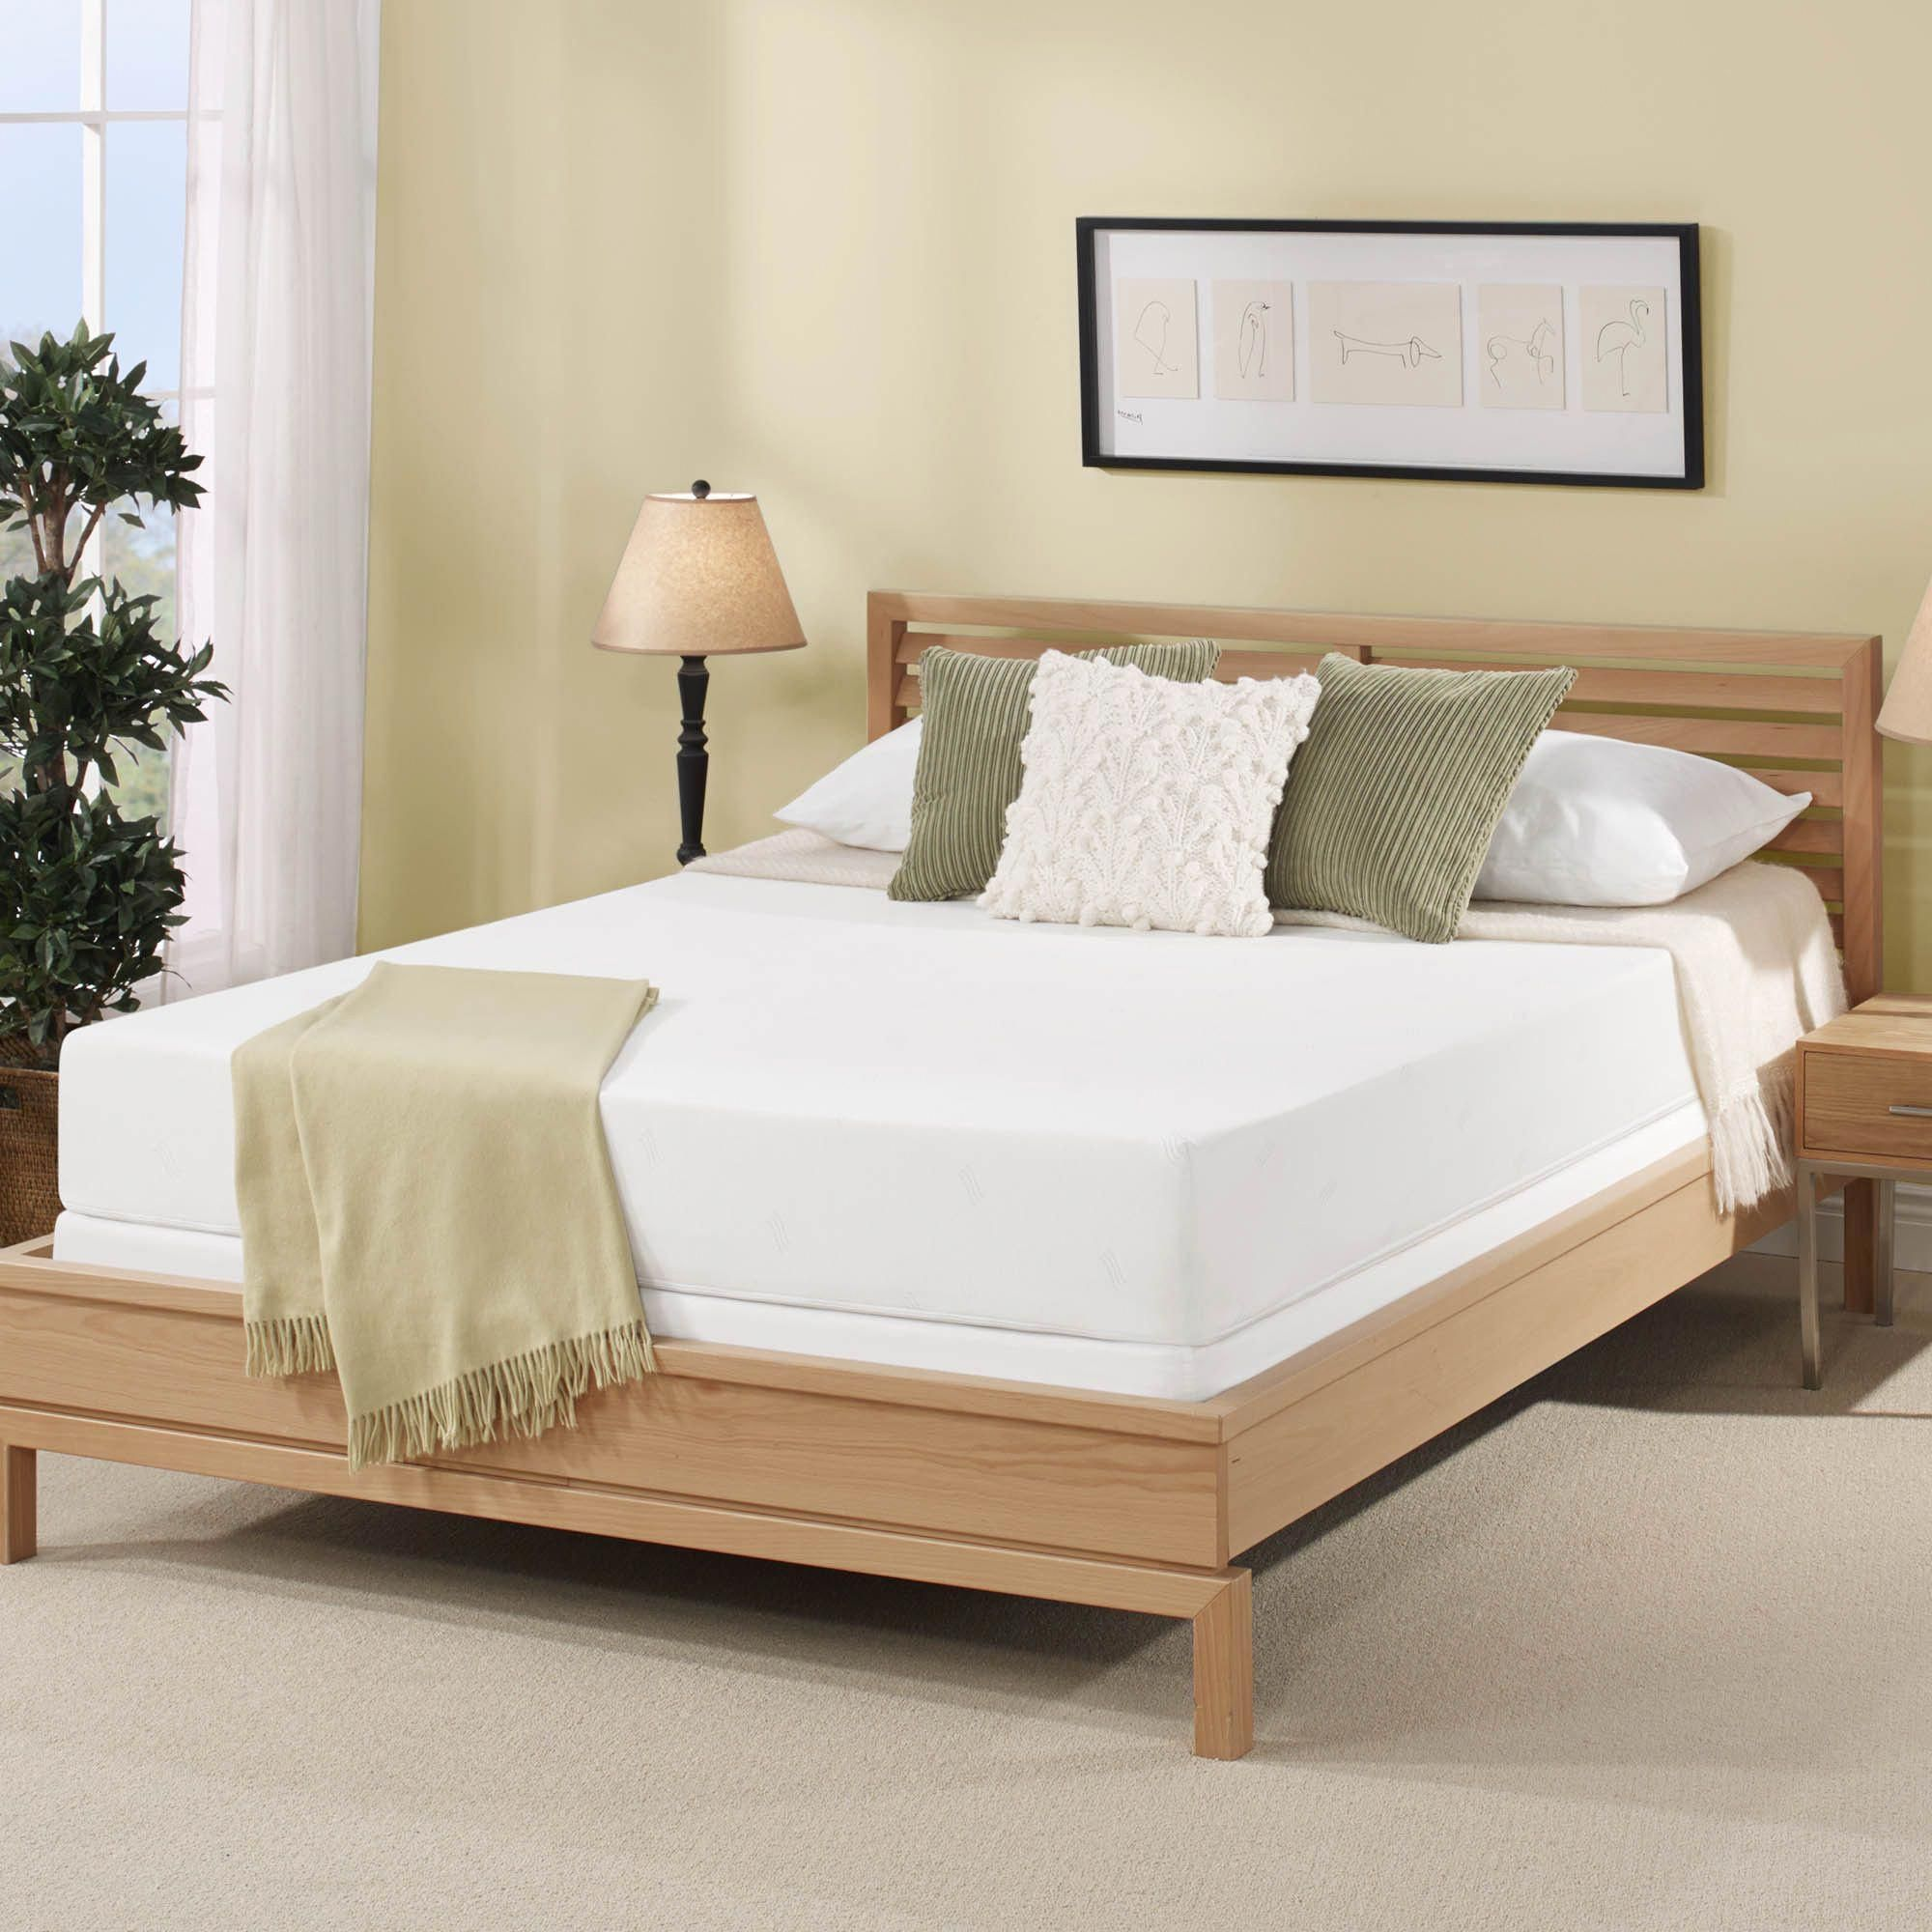 Memory Foam Mattress Too Firm Sleep On Comfort That Adapts To You Never Too Firm And Never Too